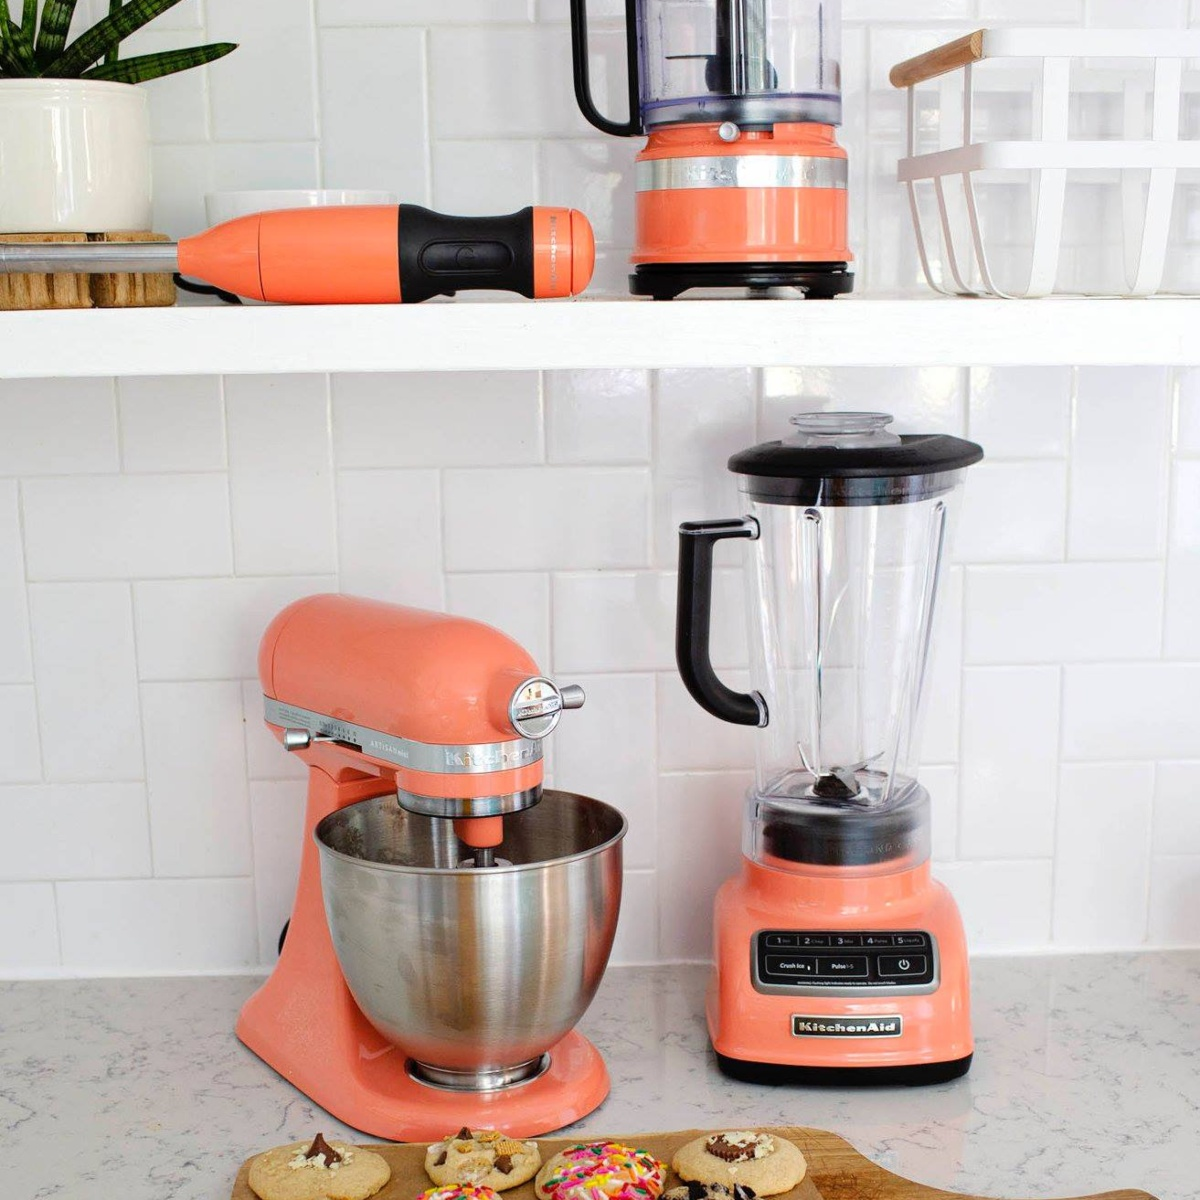 salmon-colored KitchenAid appliances